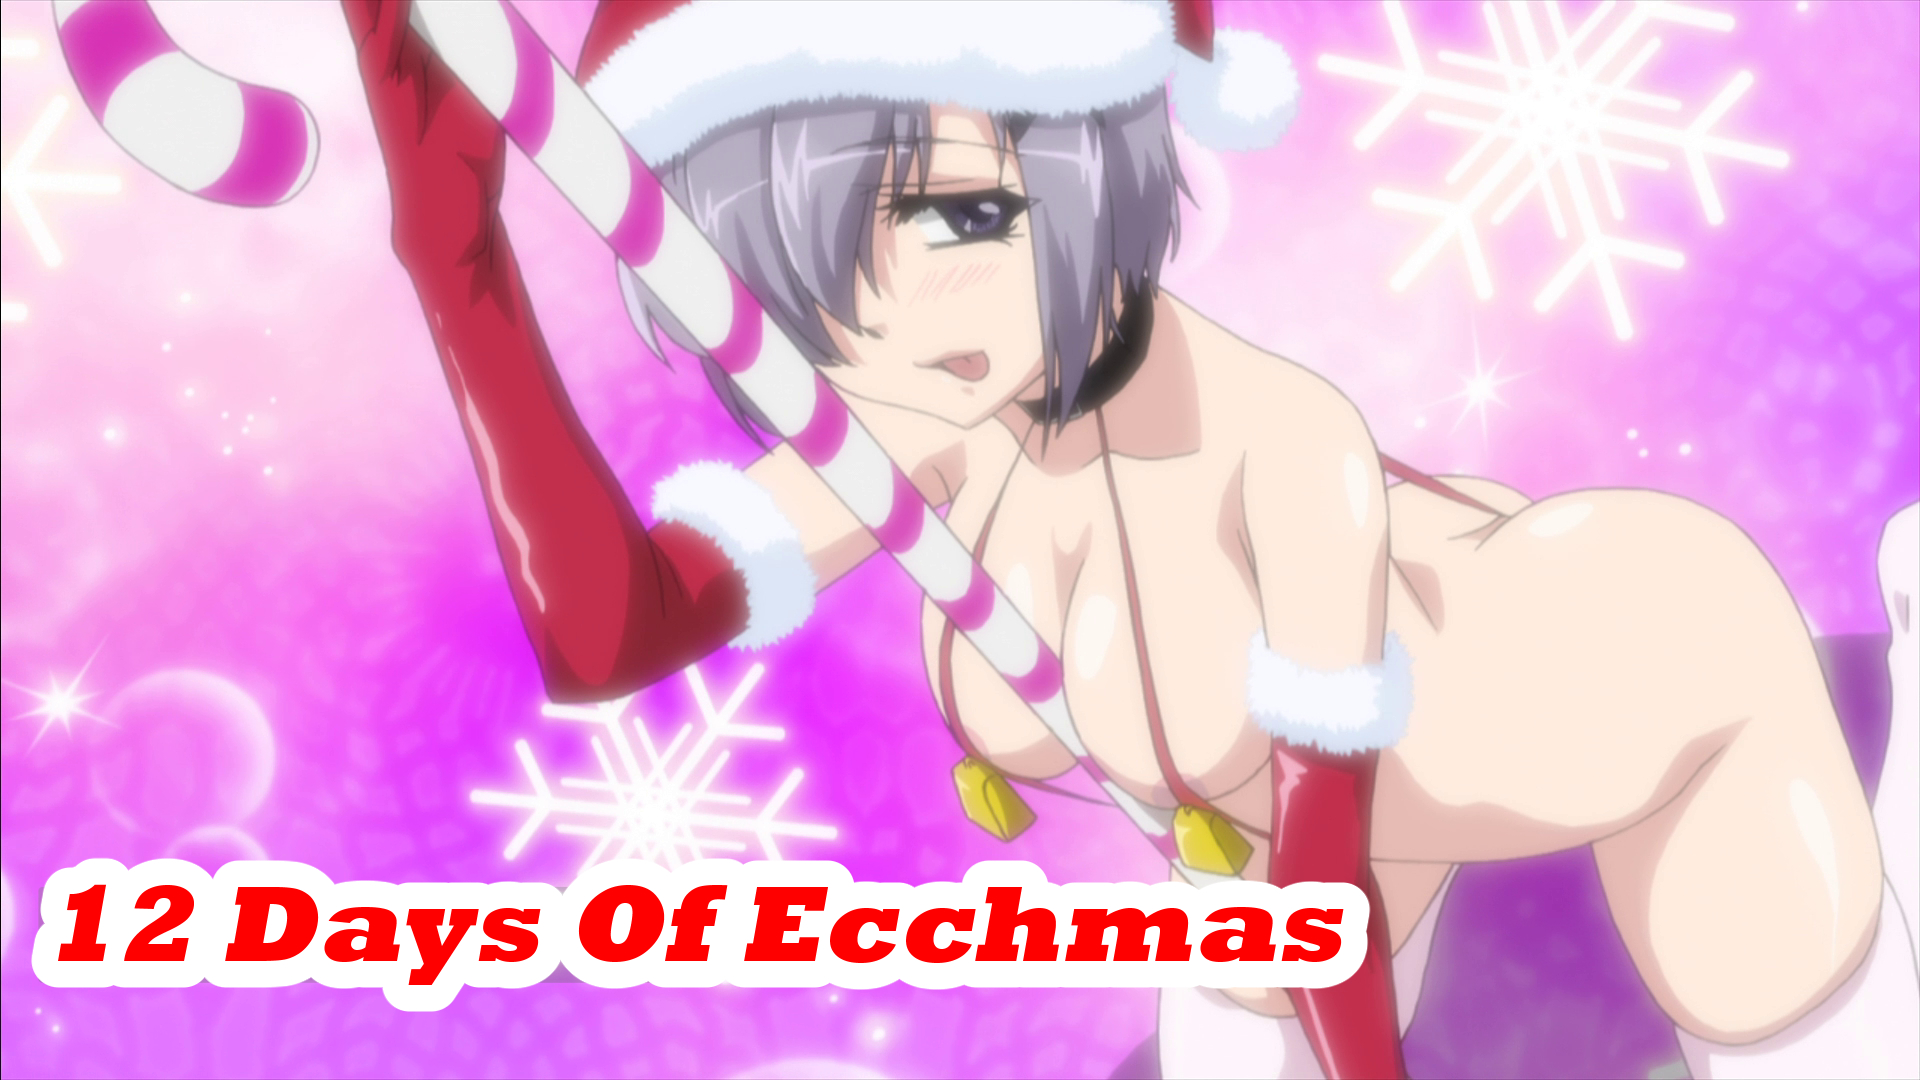 The 12 Days Of Ecchmas – Third Day